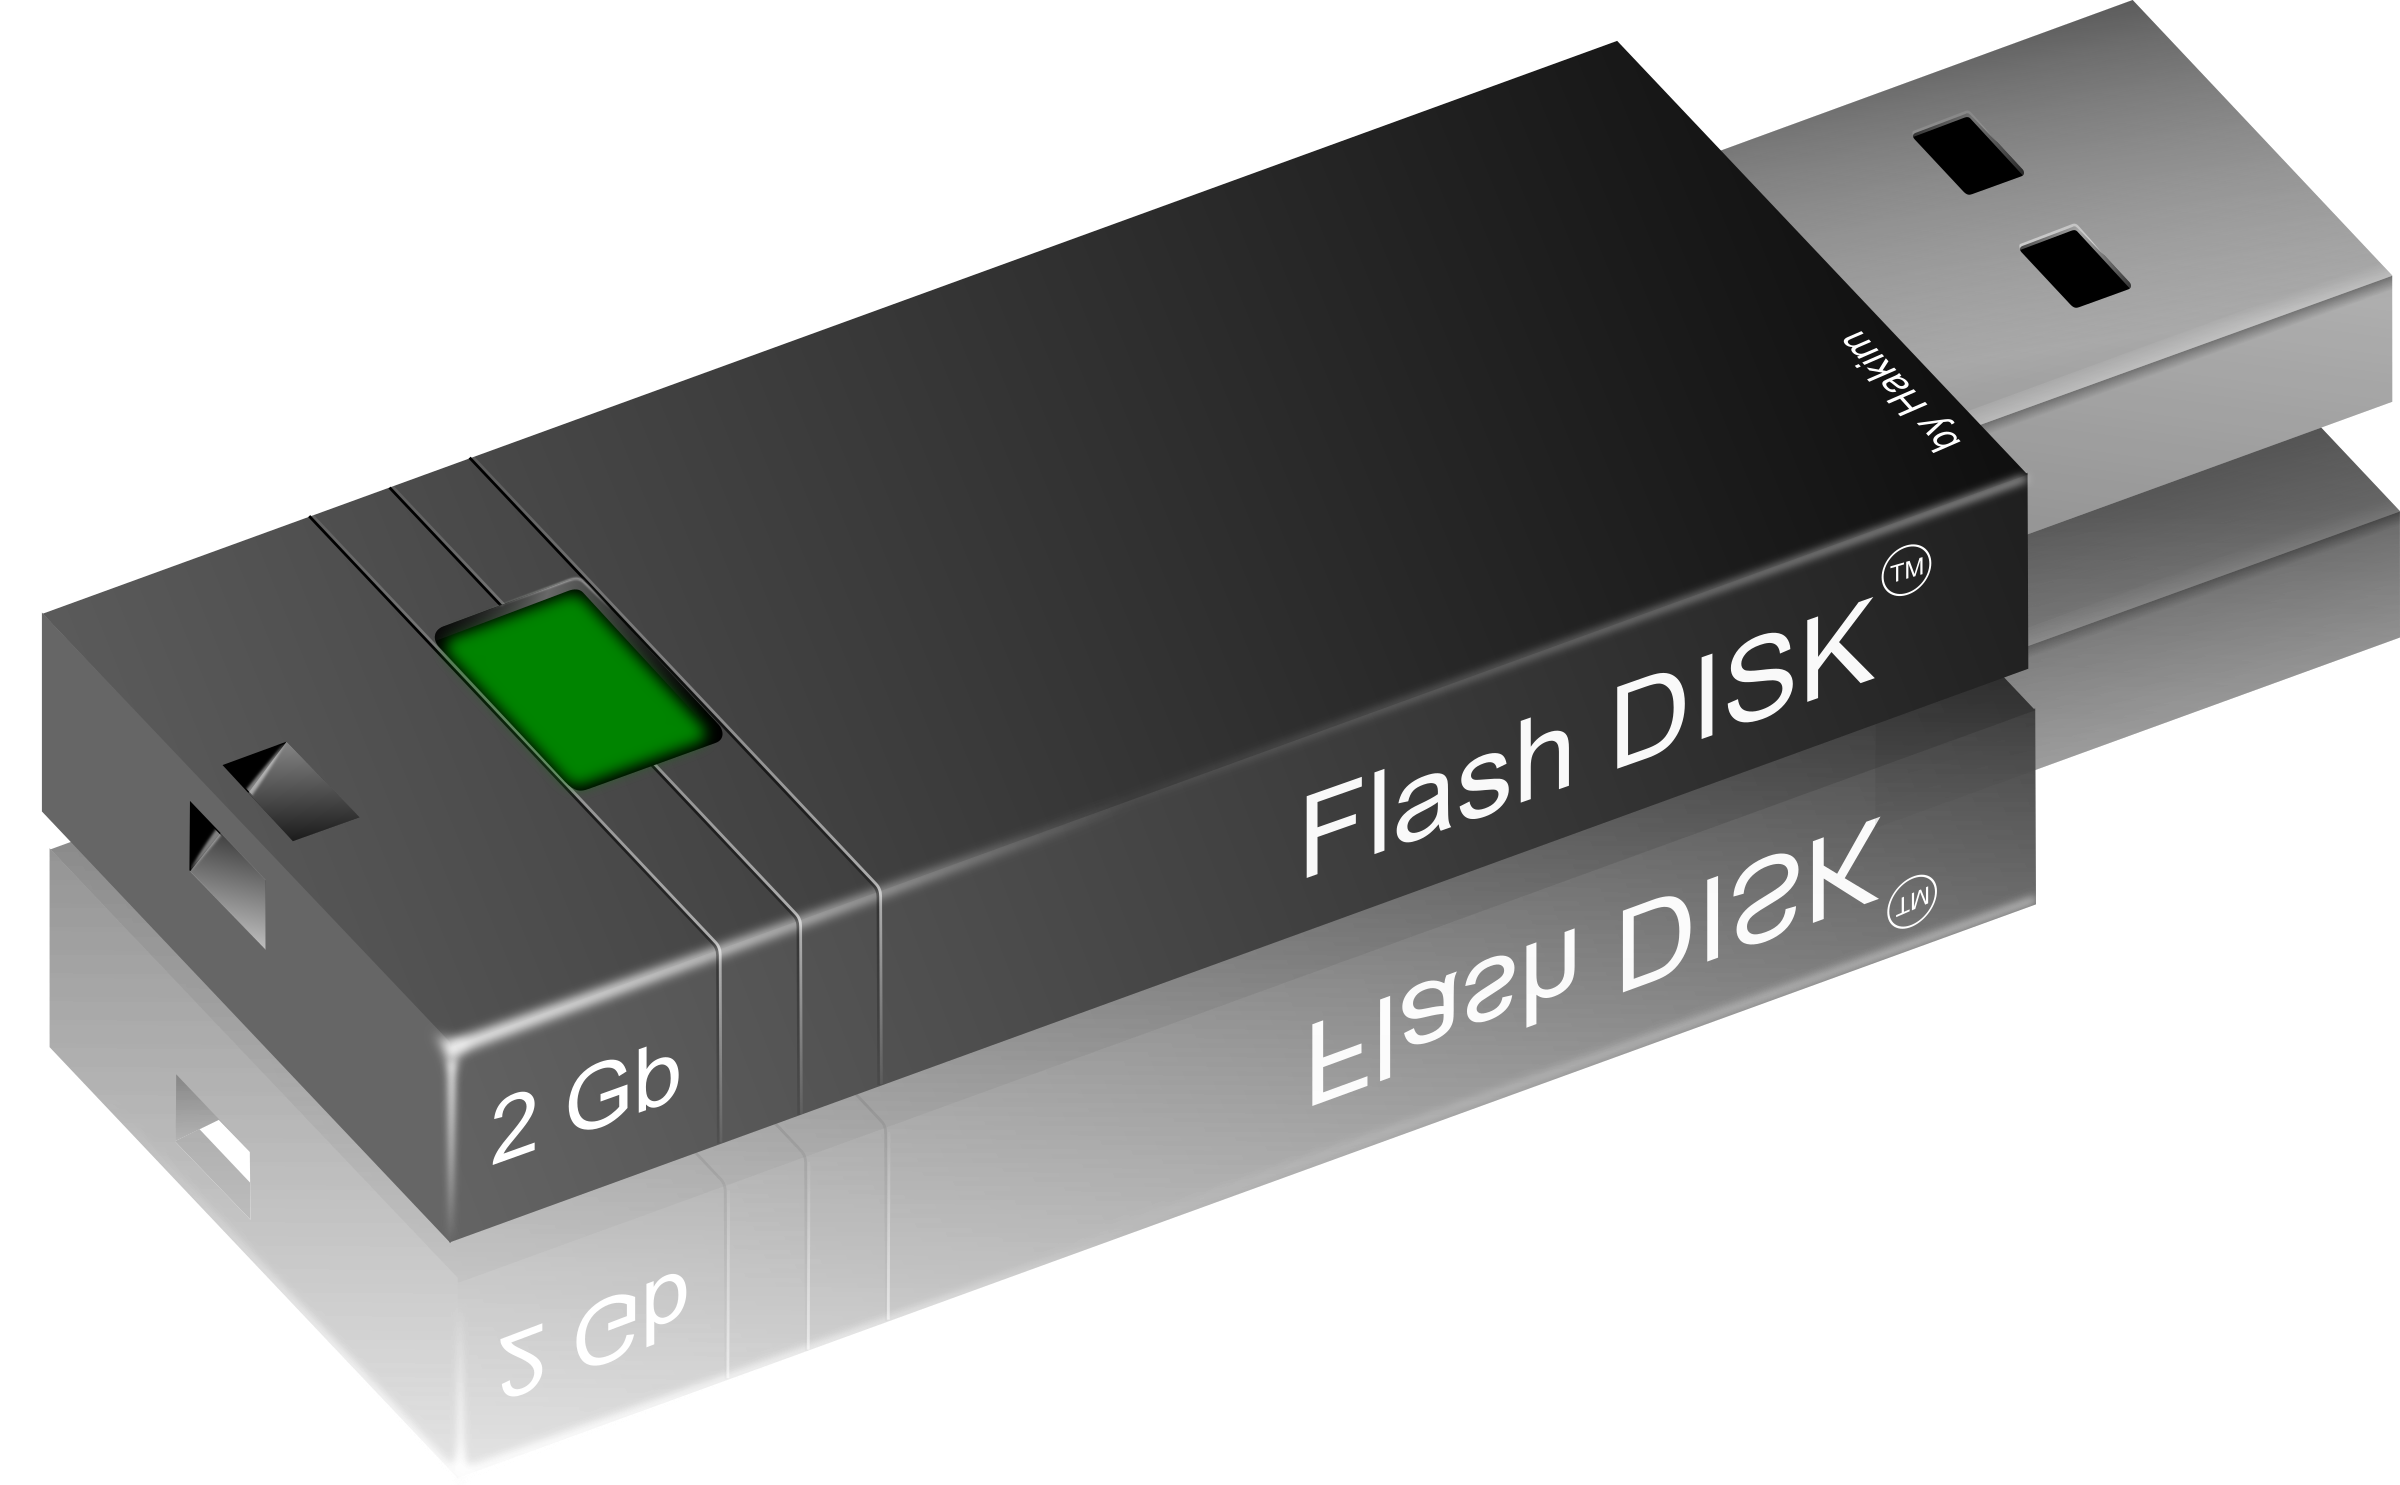 flash DISK by hakim